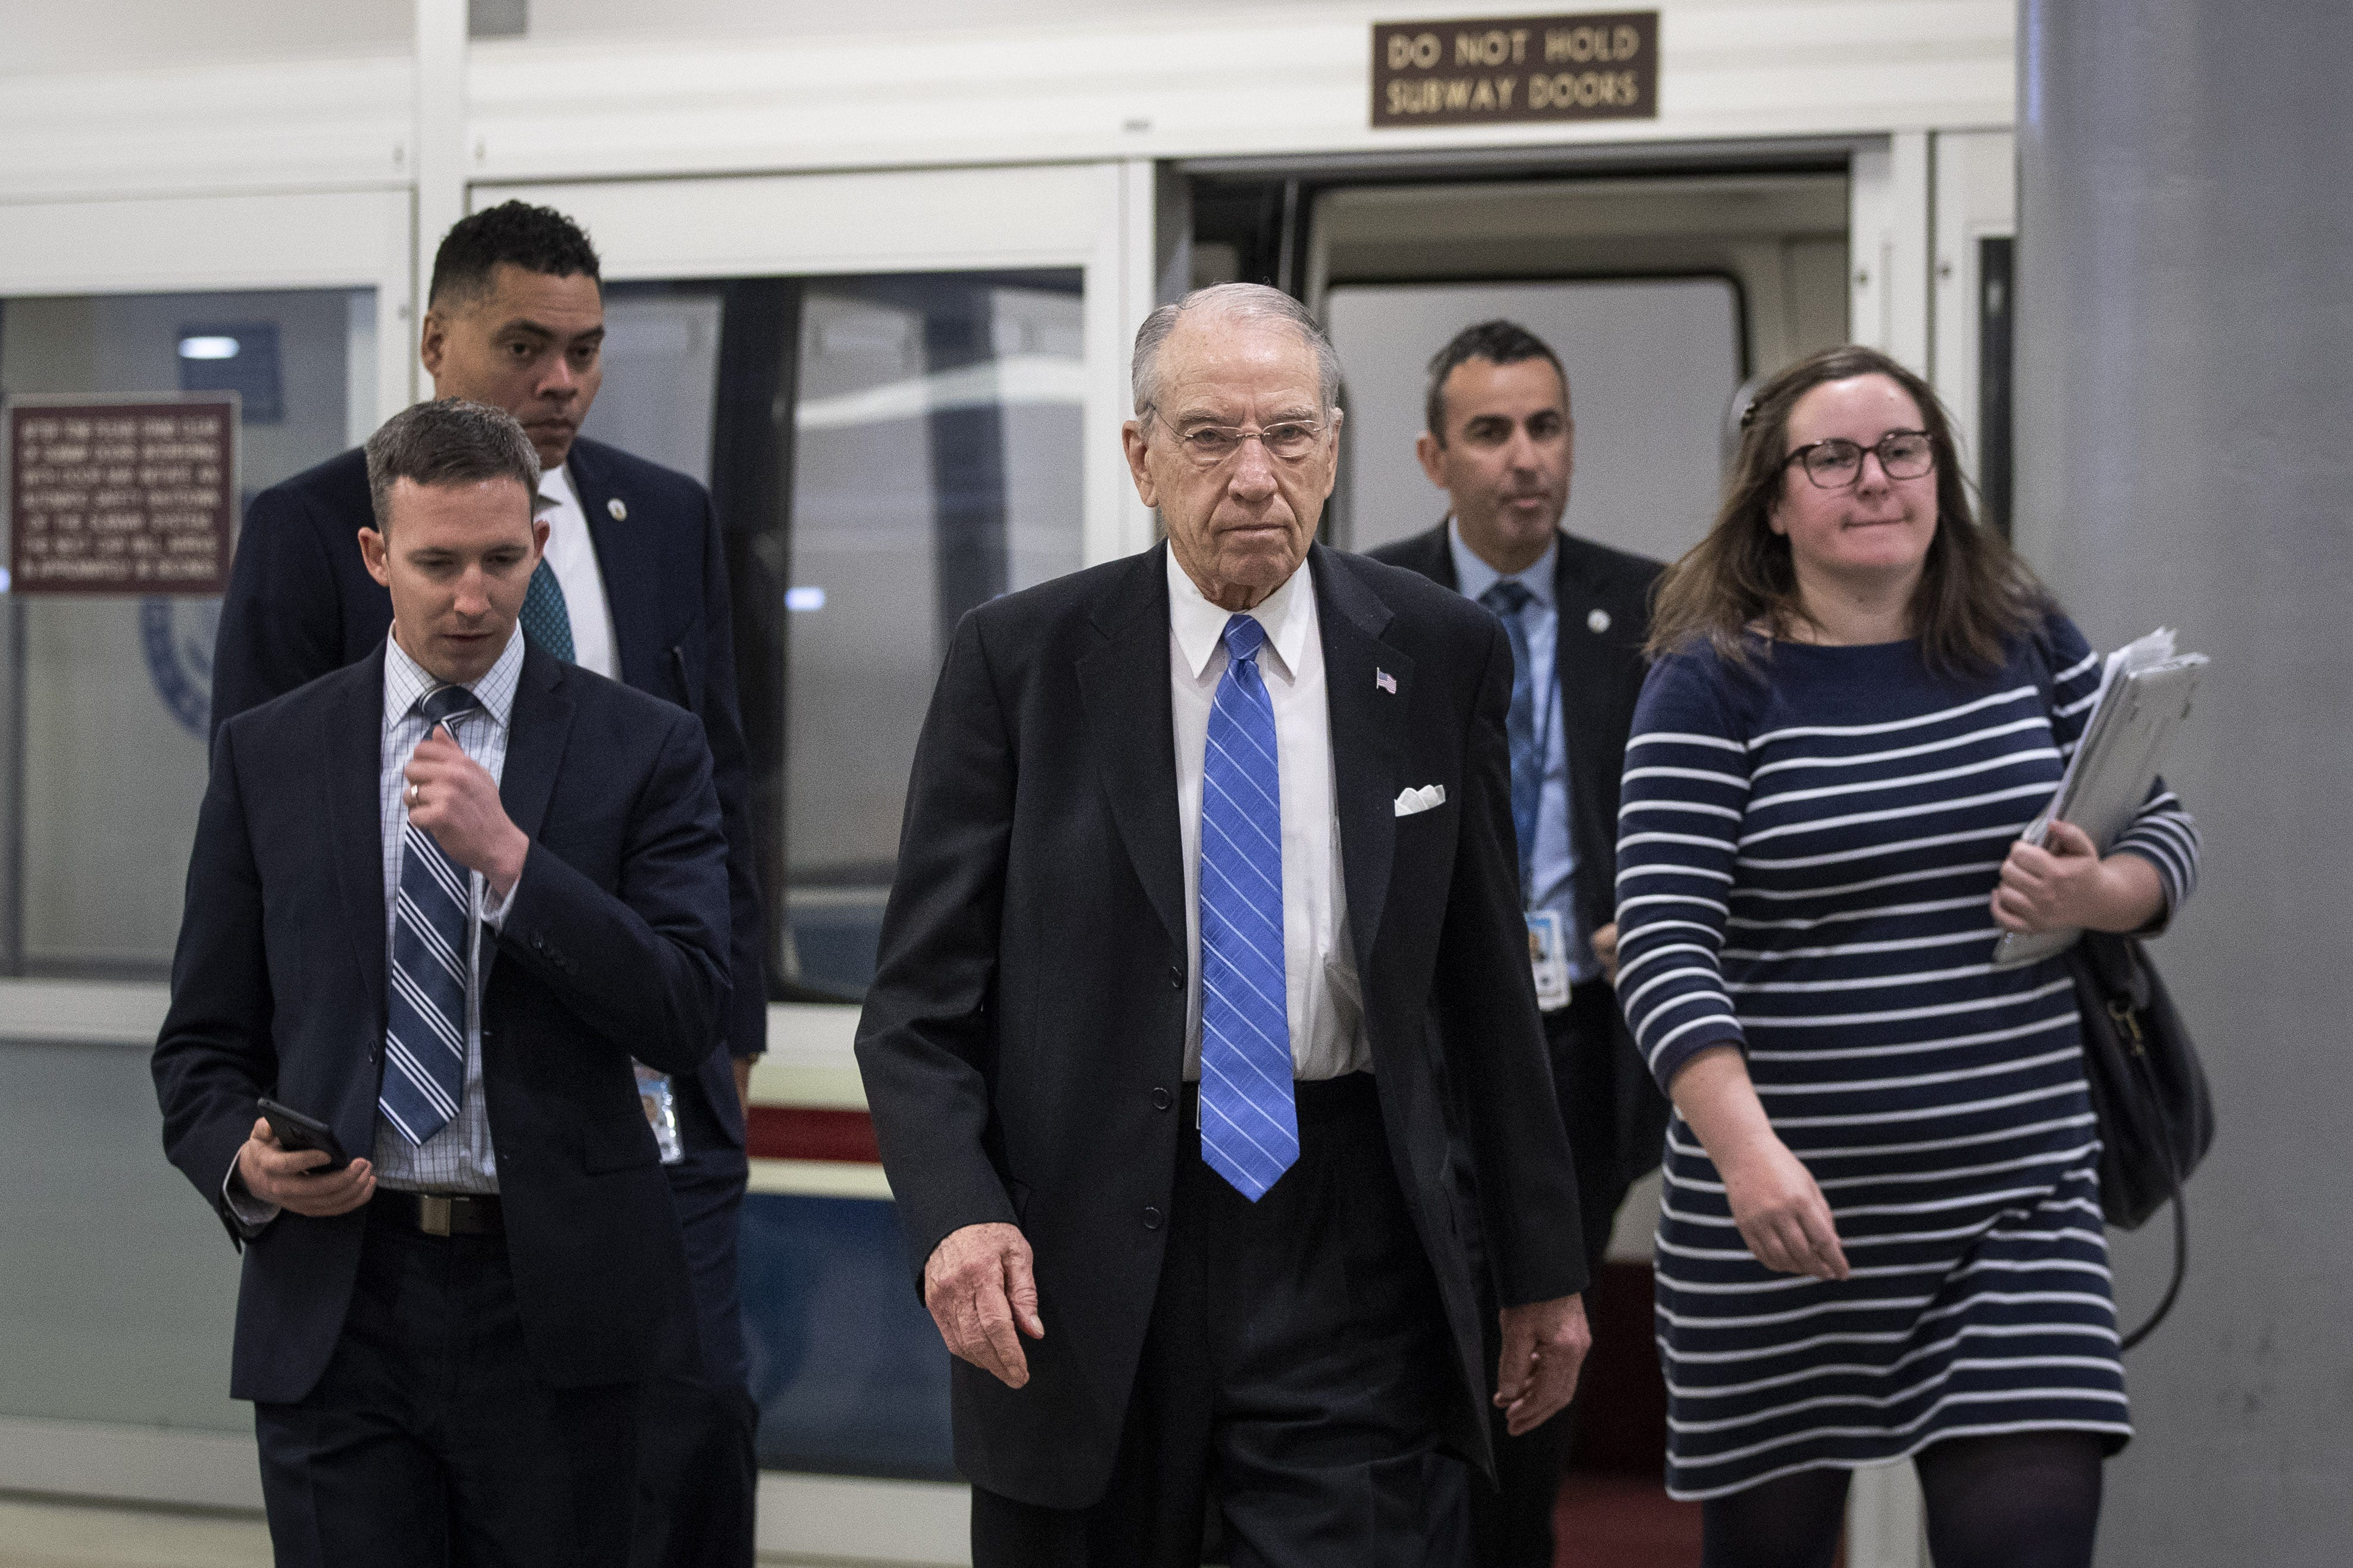 Staunch Trump ally Sen. Chuck Grassley pushes back against calls to out whistleblower